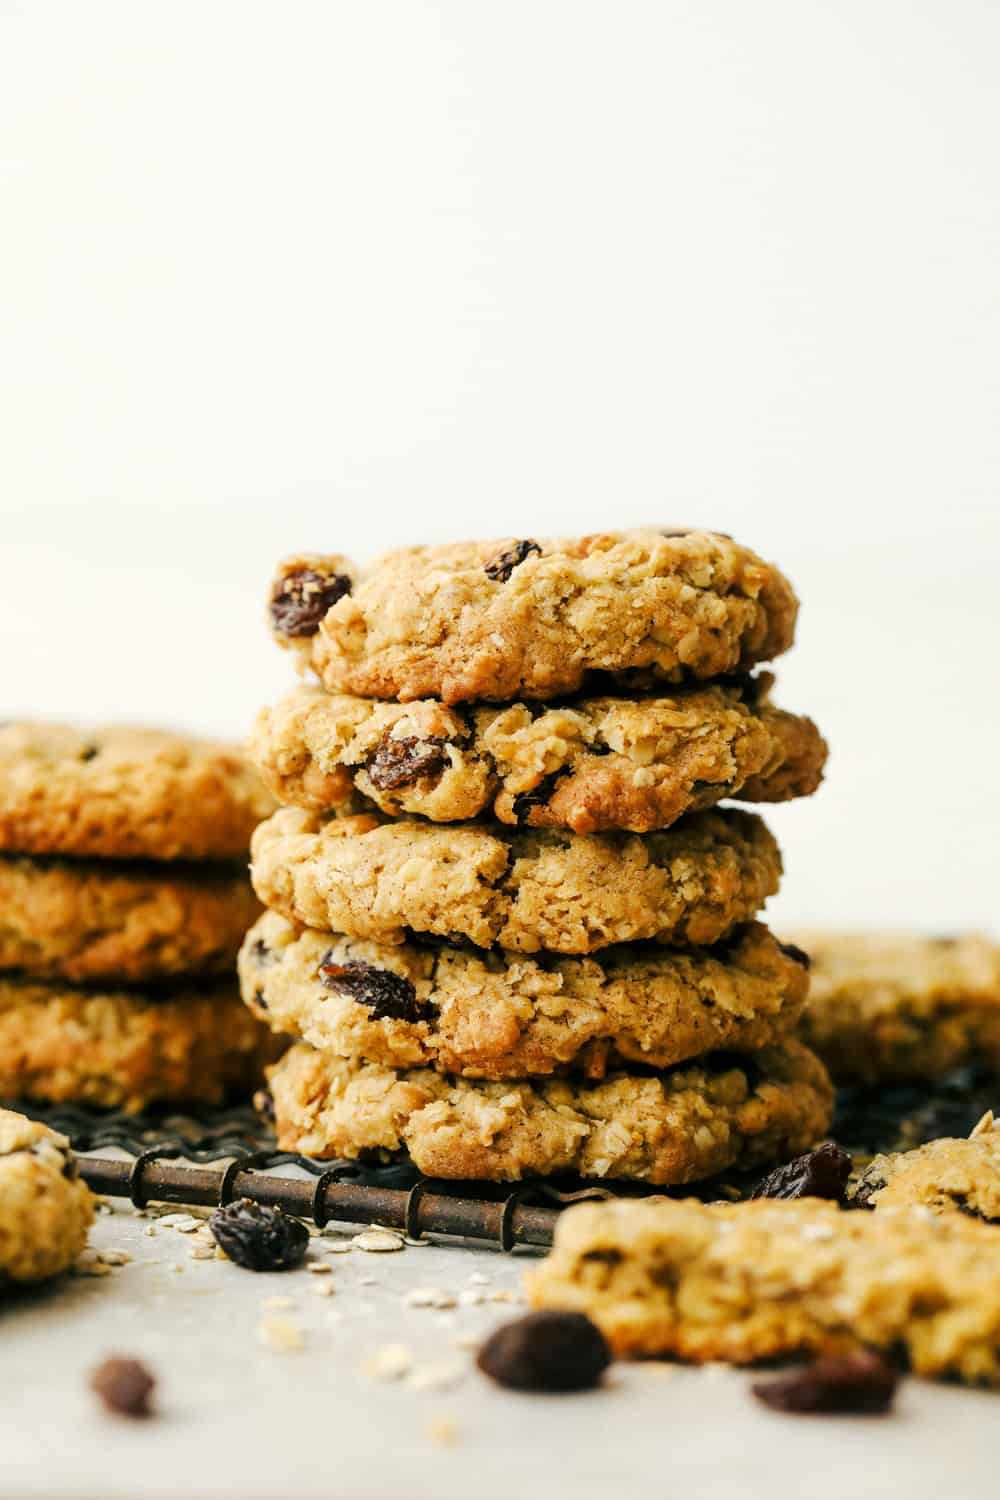 A stack of oatmeal cookies ready to eat.